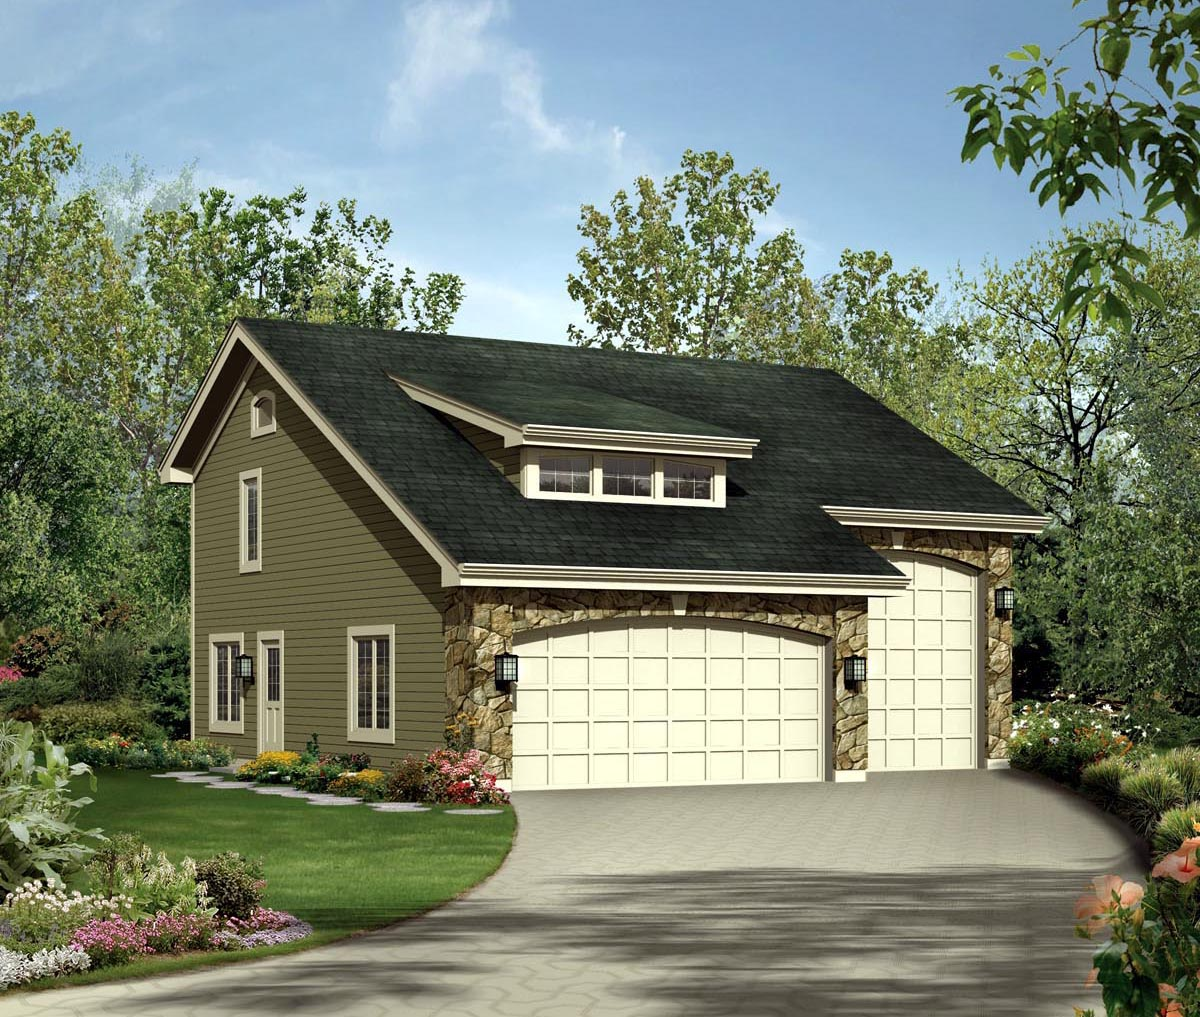 Garage Apartment Plans at FamilyHomePlans.